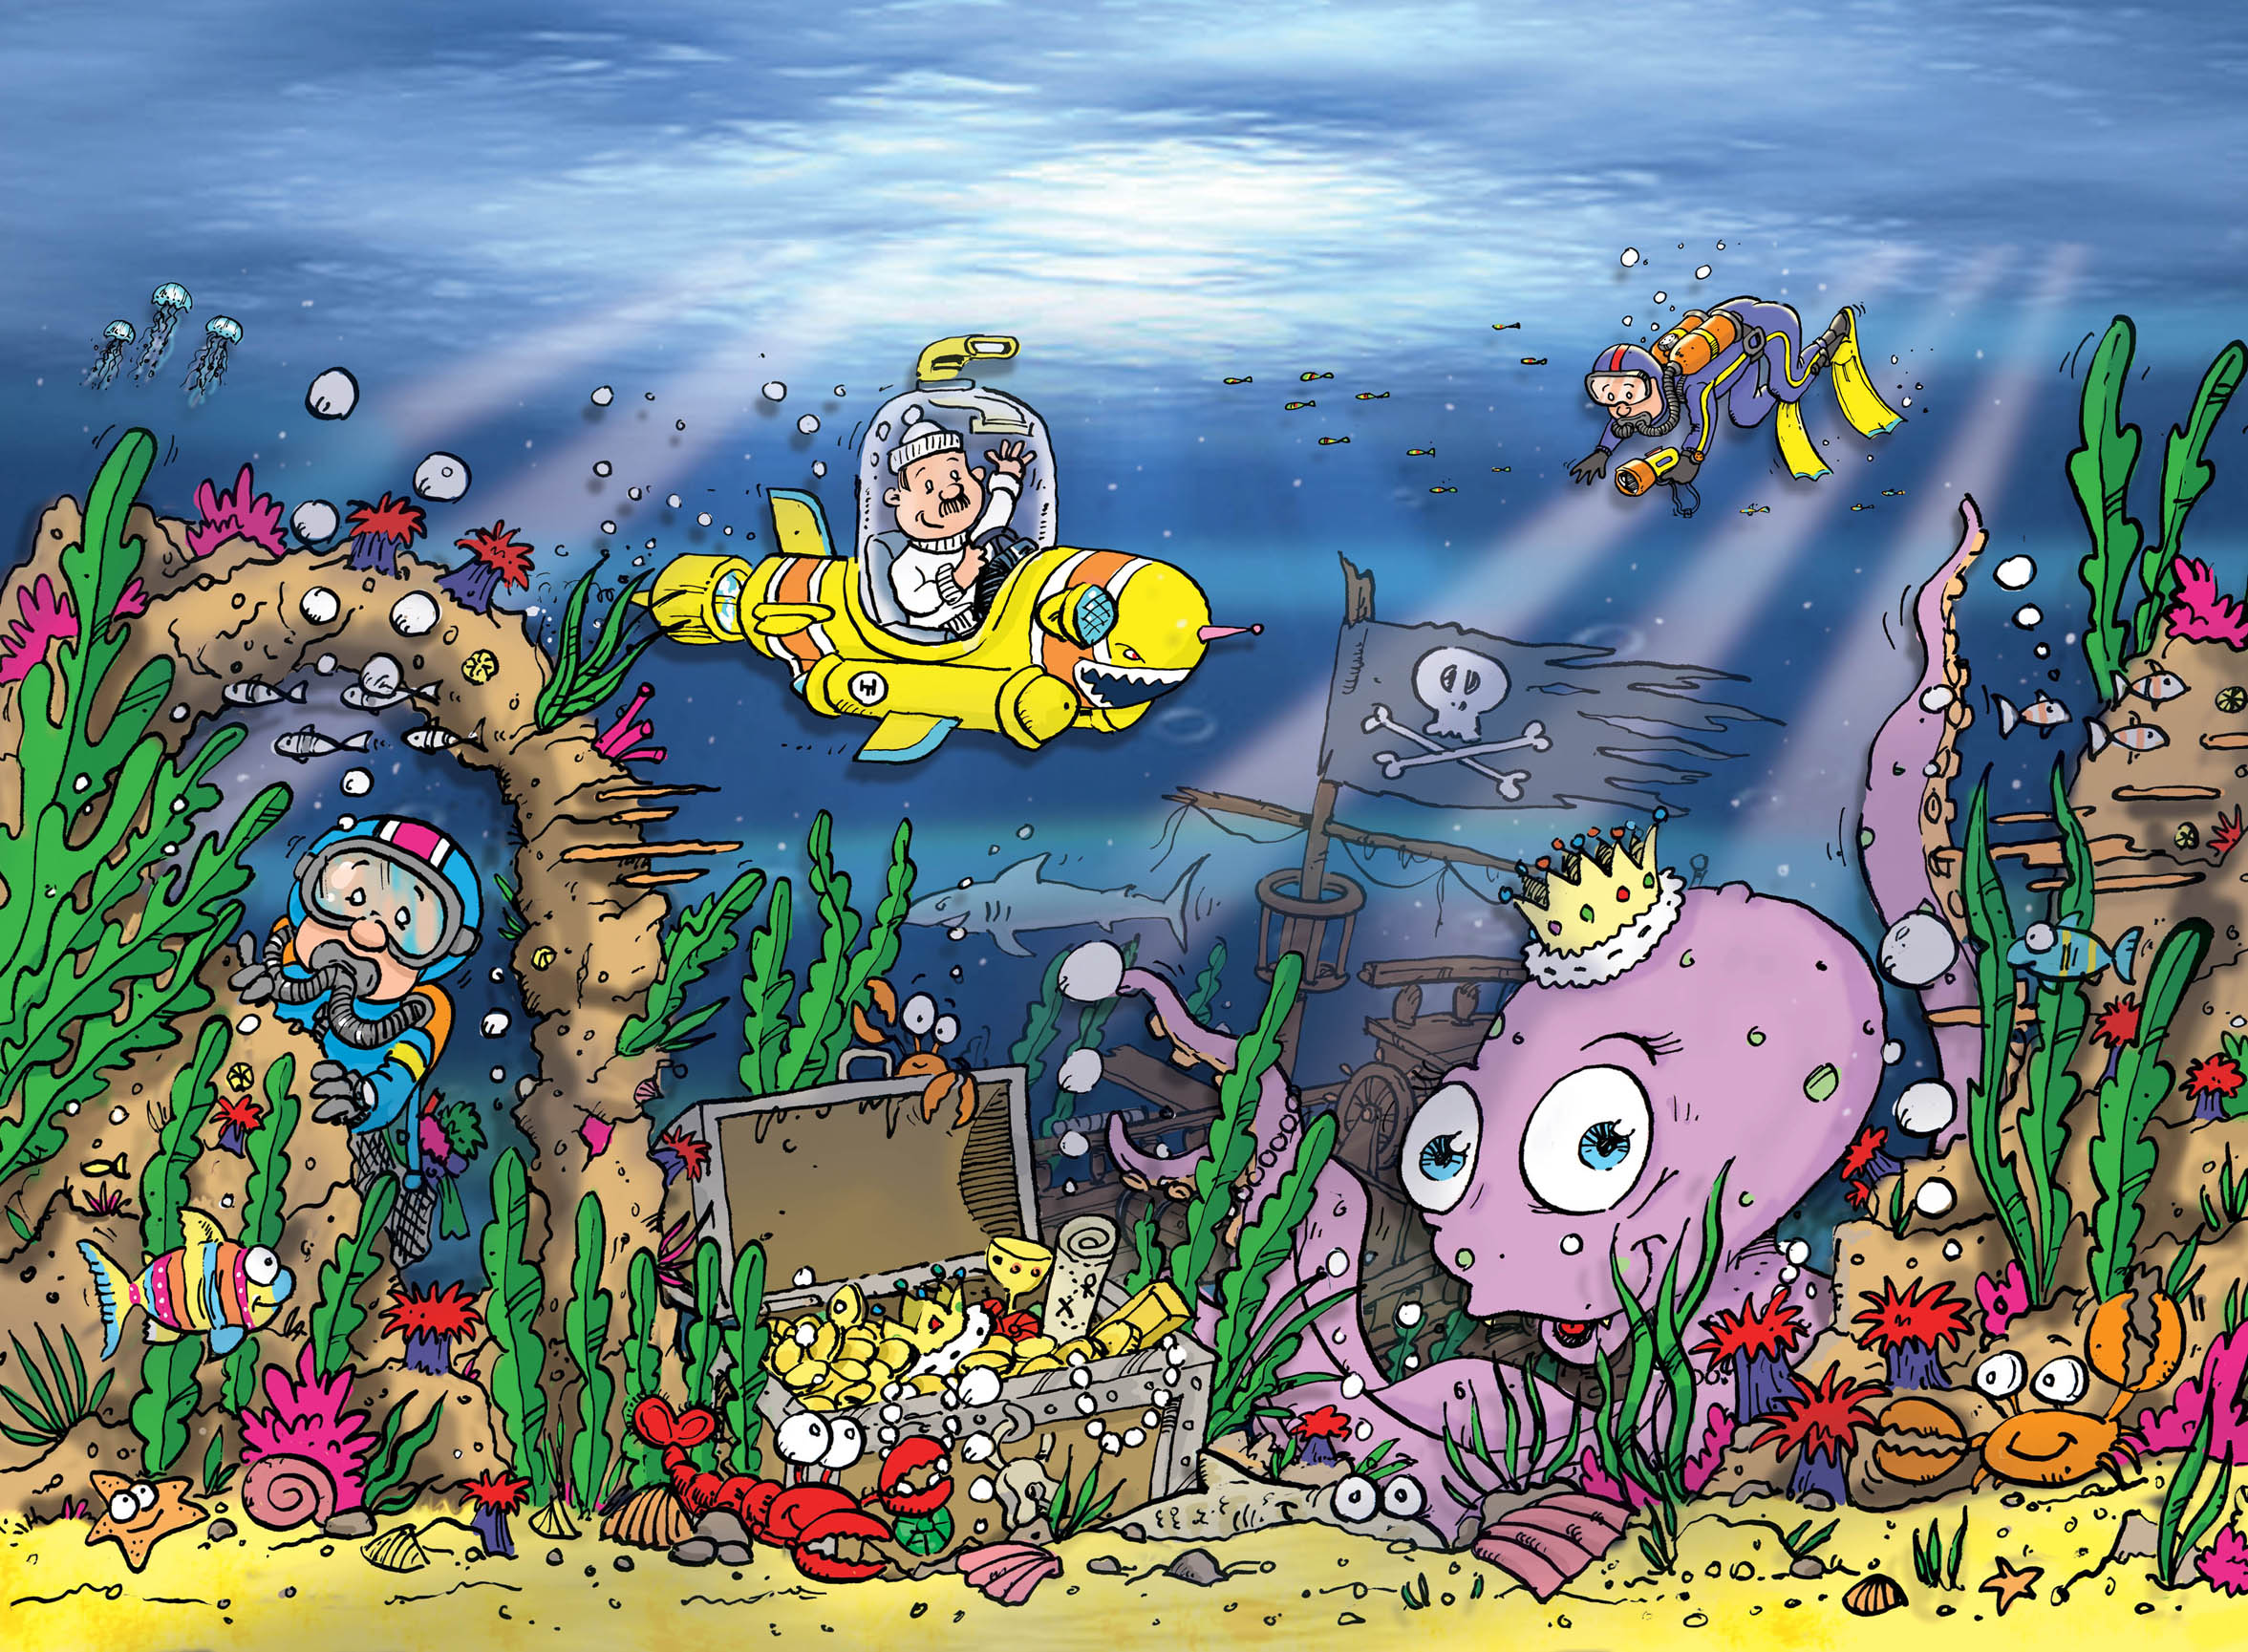 buy childrens underwater wallpaper murals for 35 00 per sq m2 this is the wall area you have selected it will be printed white on the areas that are not covered